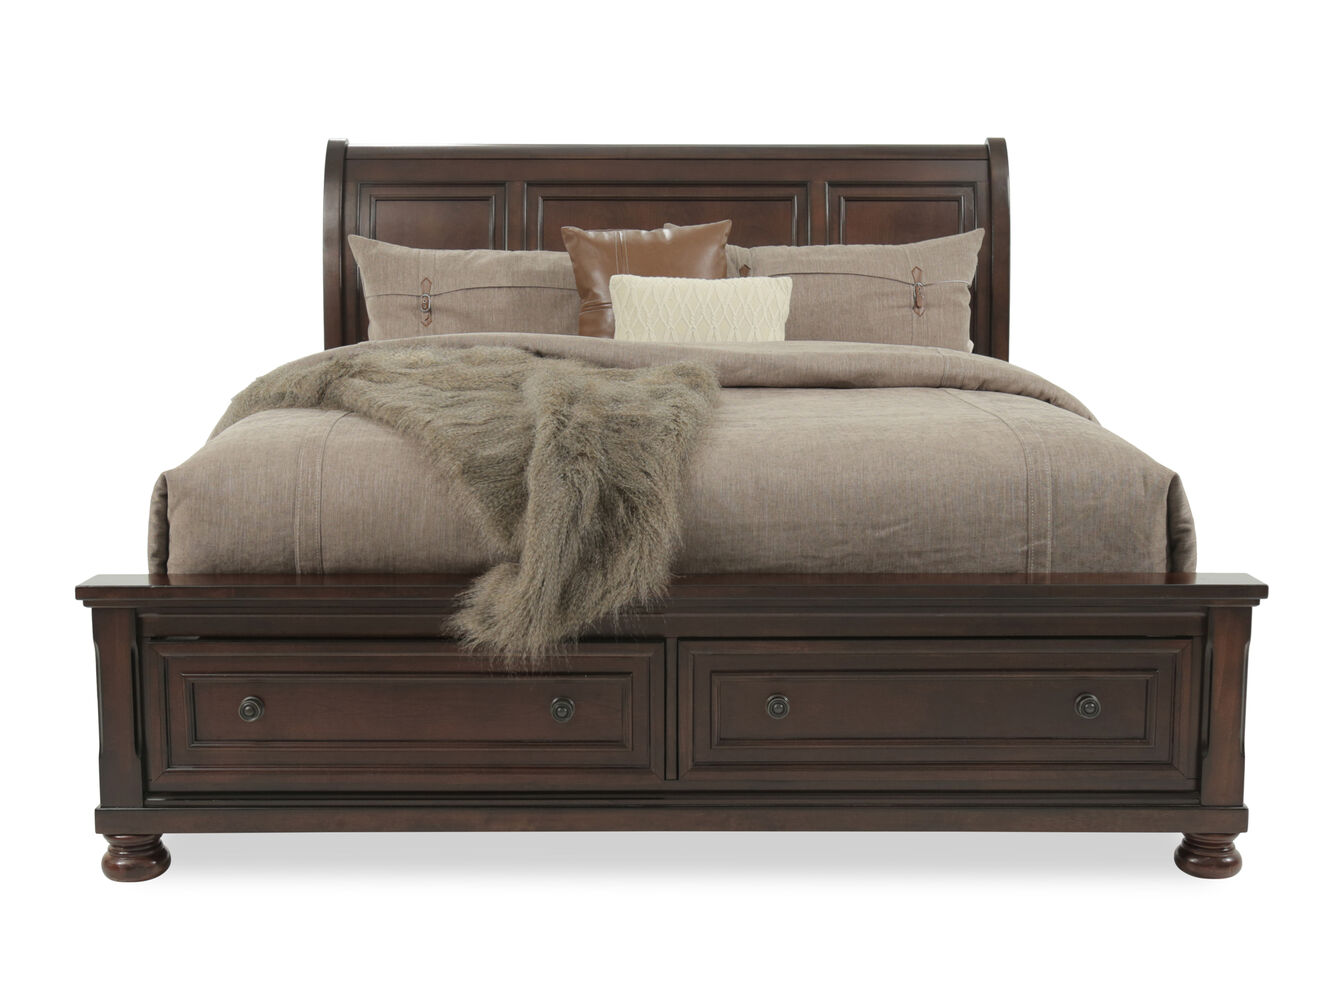 Ashley Furniture Sleigh Bed with Storage | Mathis Brothers